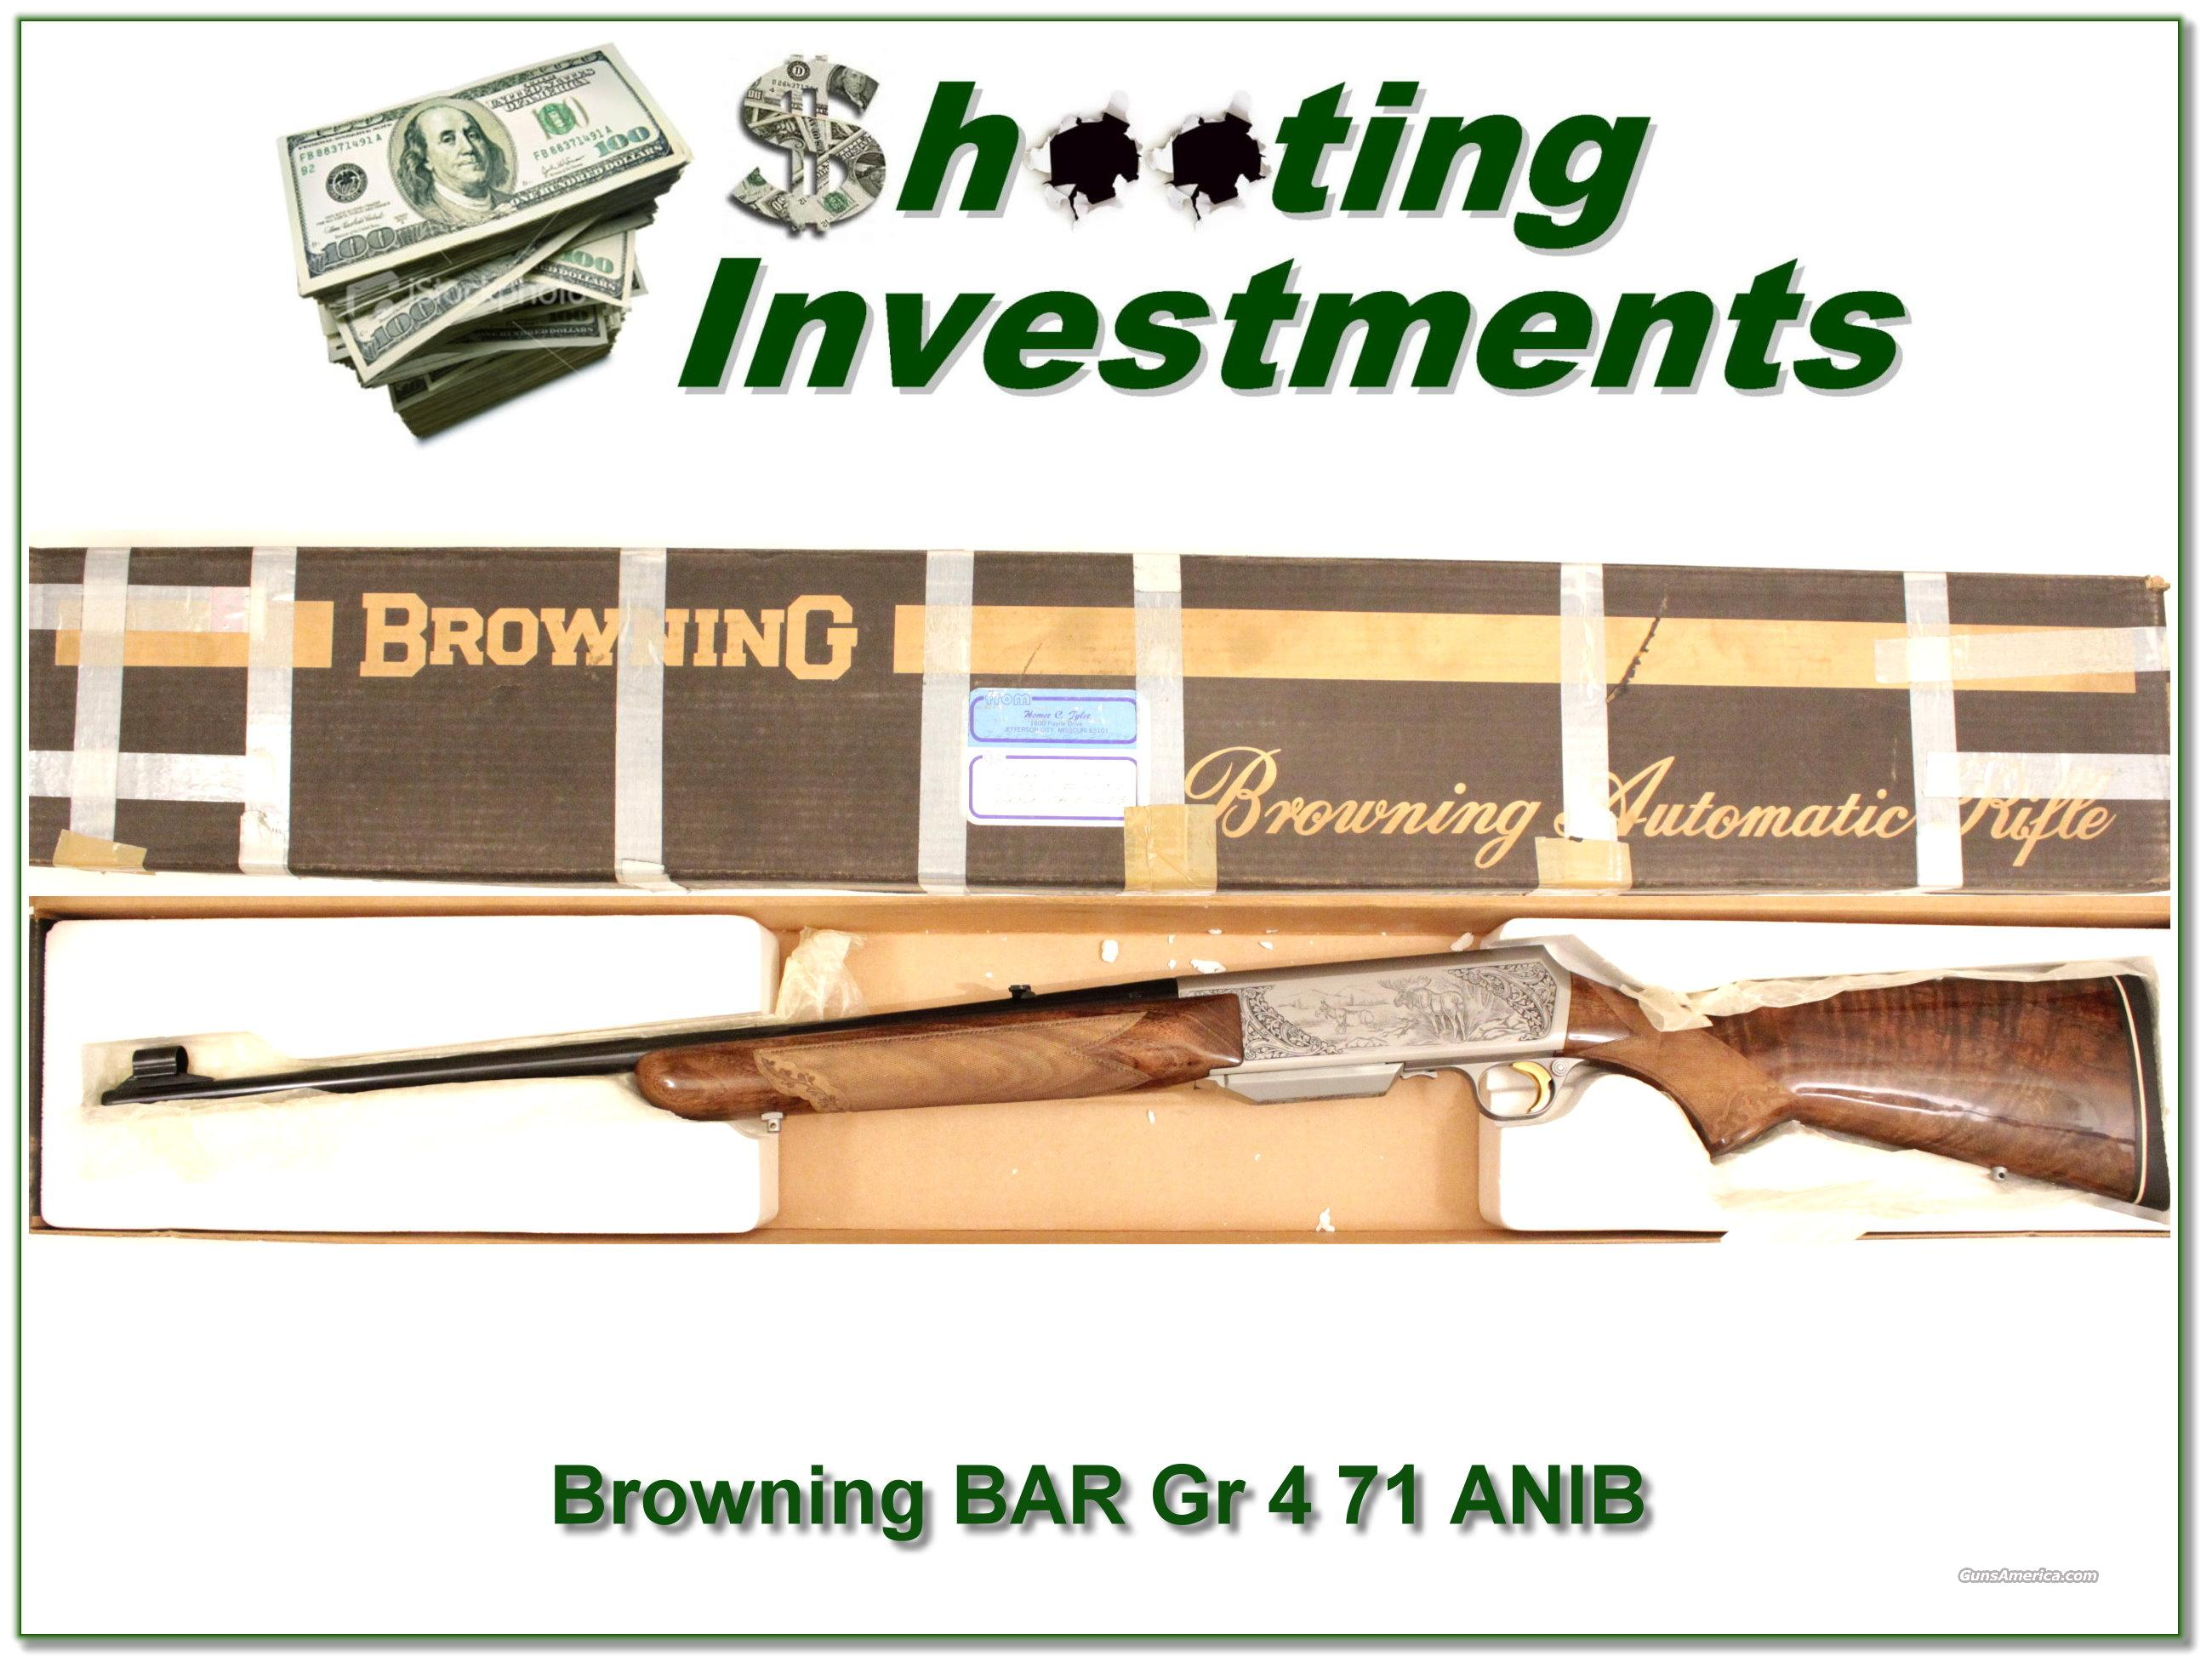 Browning BAR 7mm Grade 4 1971 Belgium ANIB  Guns > Rifles > Browning Rifles > Semi Auto > Hunting